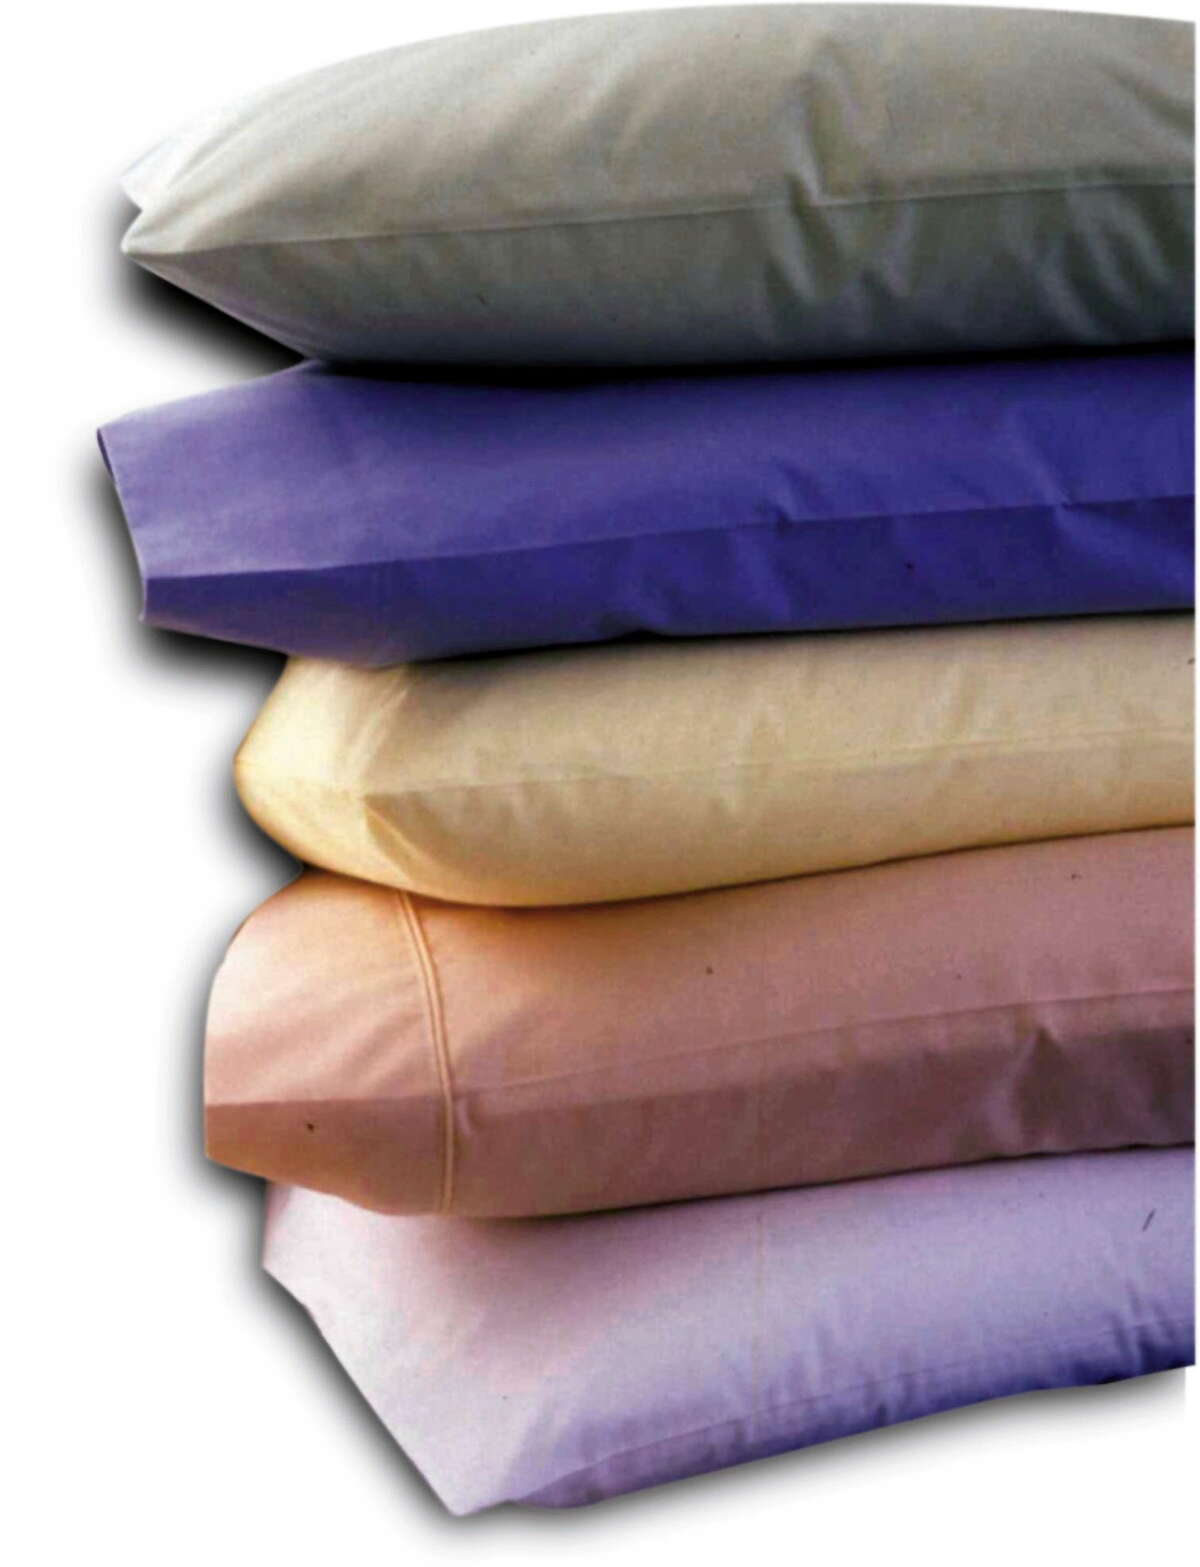 KRT LIFESTYLE STORY SLUGGED: HOME-PILLOWS KRT PHOTO VIA DETROIT FREE PRESS (November 15) Finding the right pillow can be helpful in getting a good night's rest. (DE) NC KD 2001 (Horiz) (gsb)